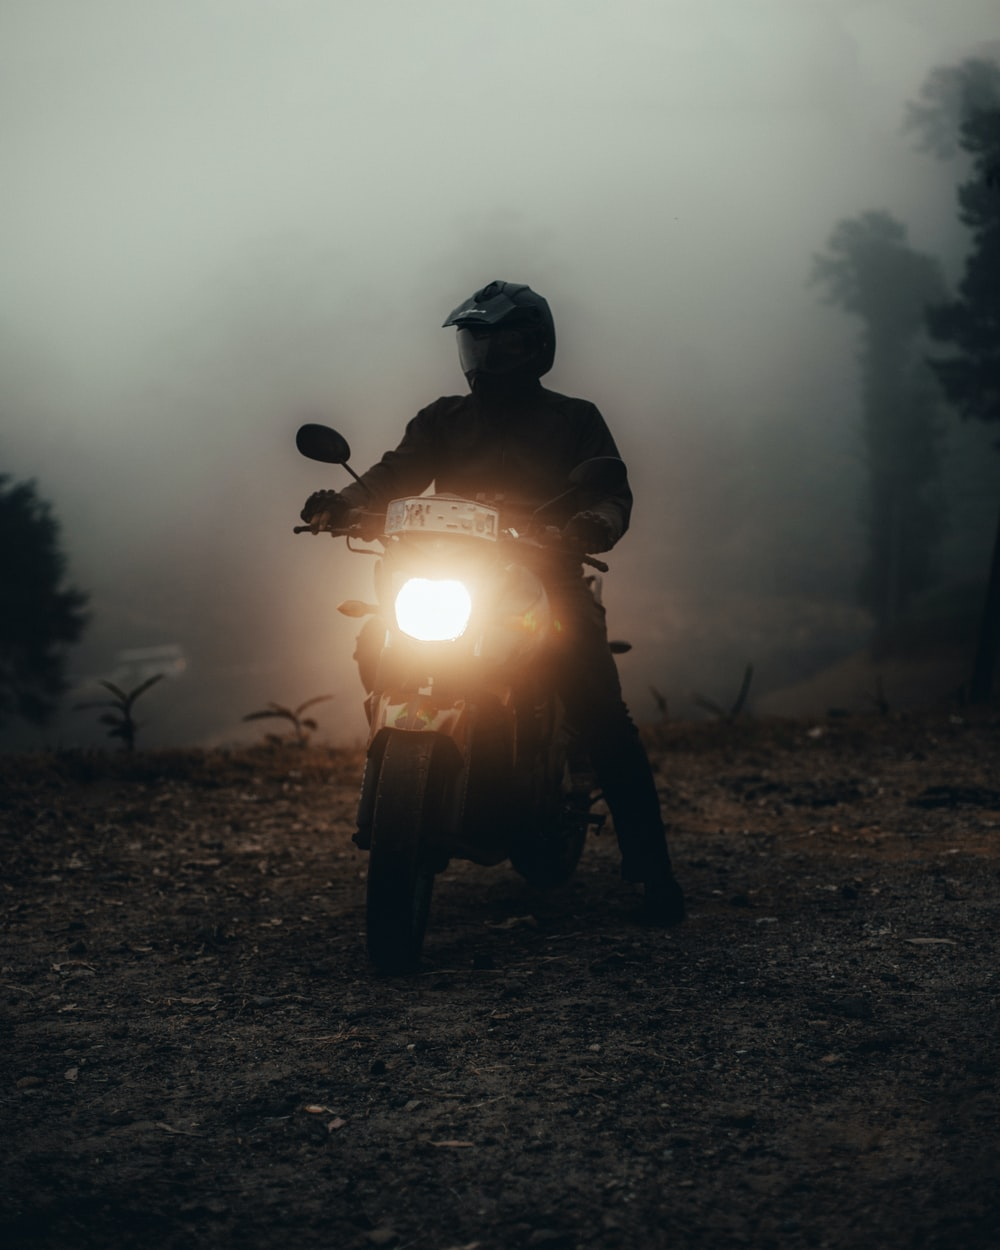 silhouette of man standing near motorcycle during night time